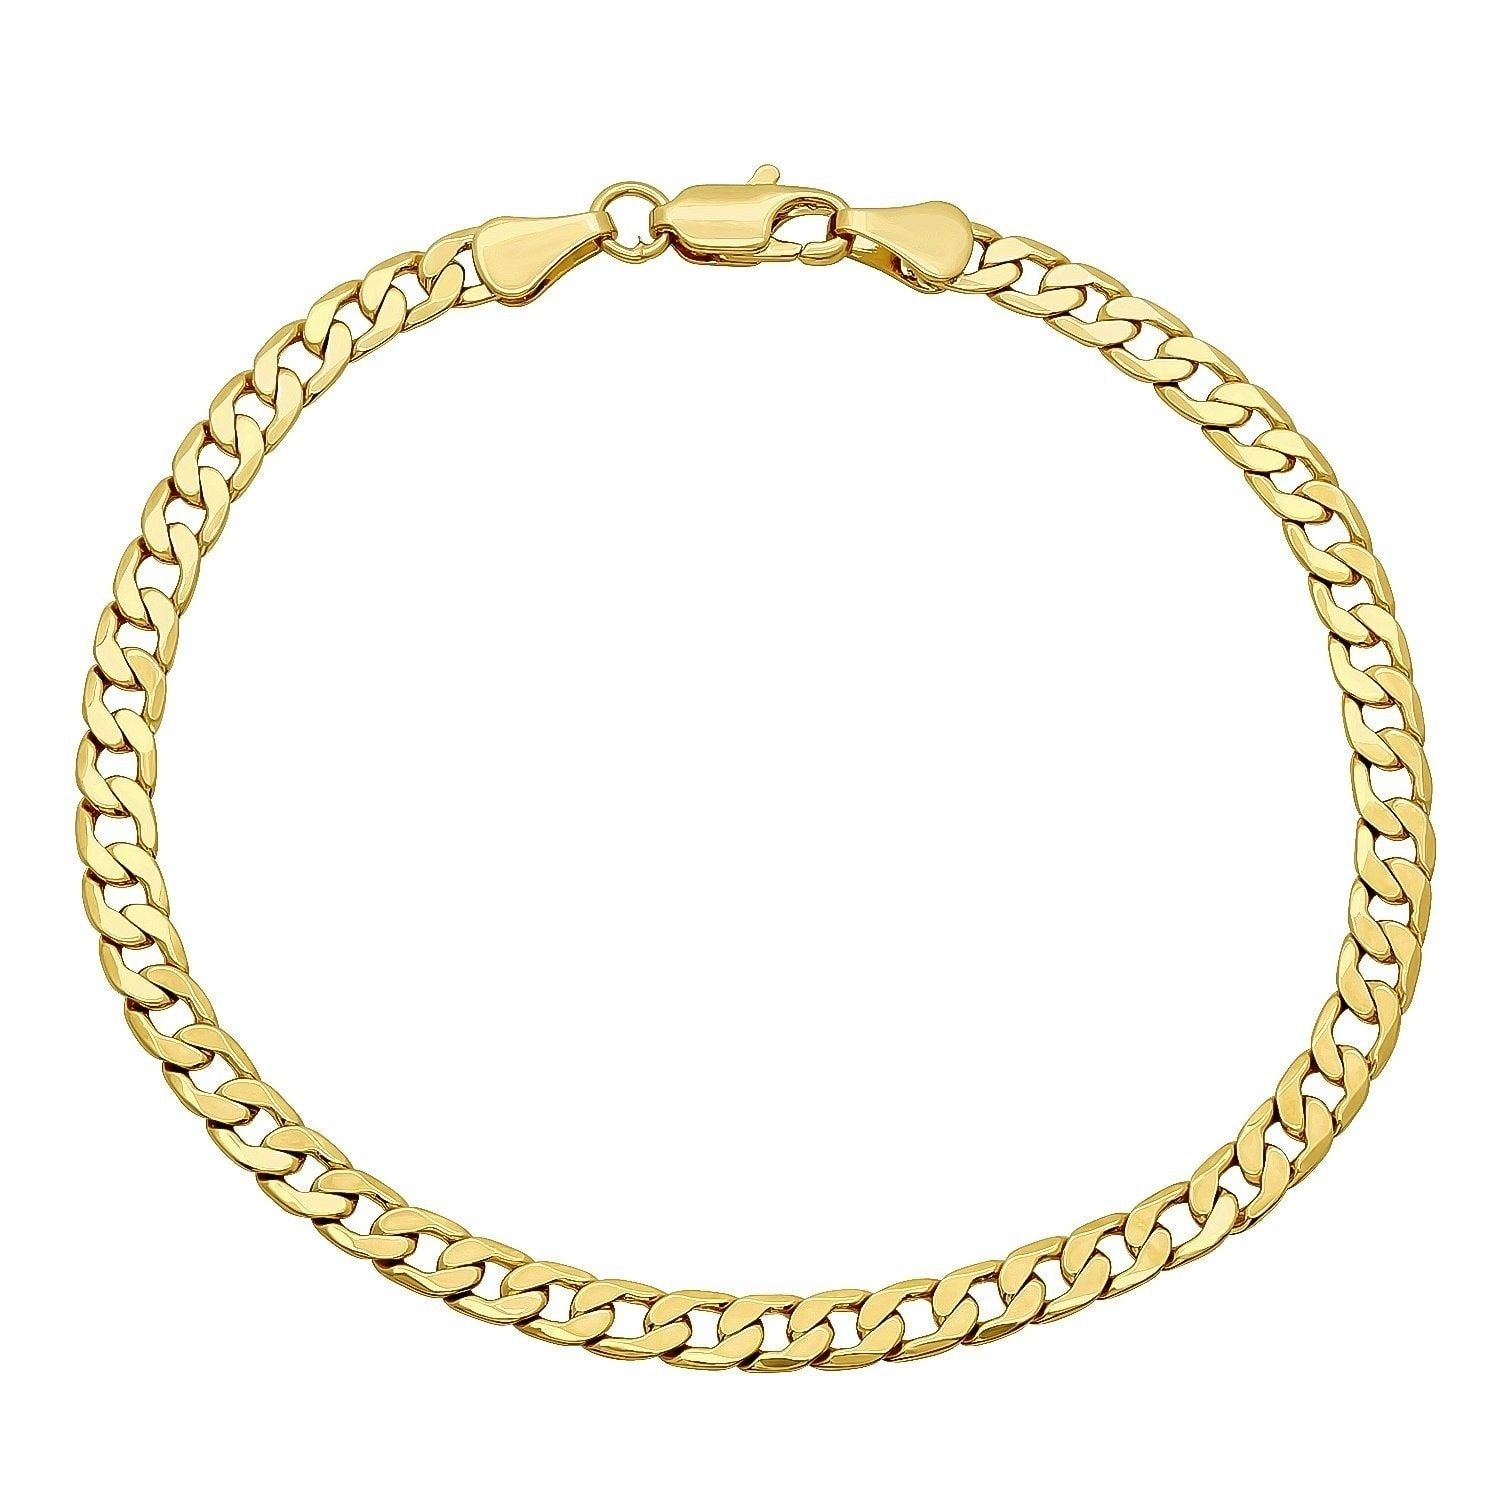 chains necklace link flat s jollys wide chain gold yellow product